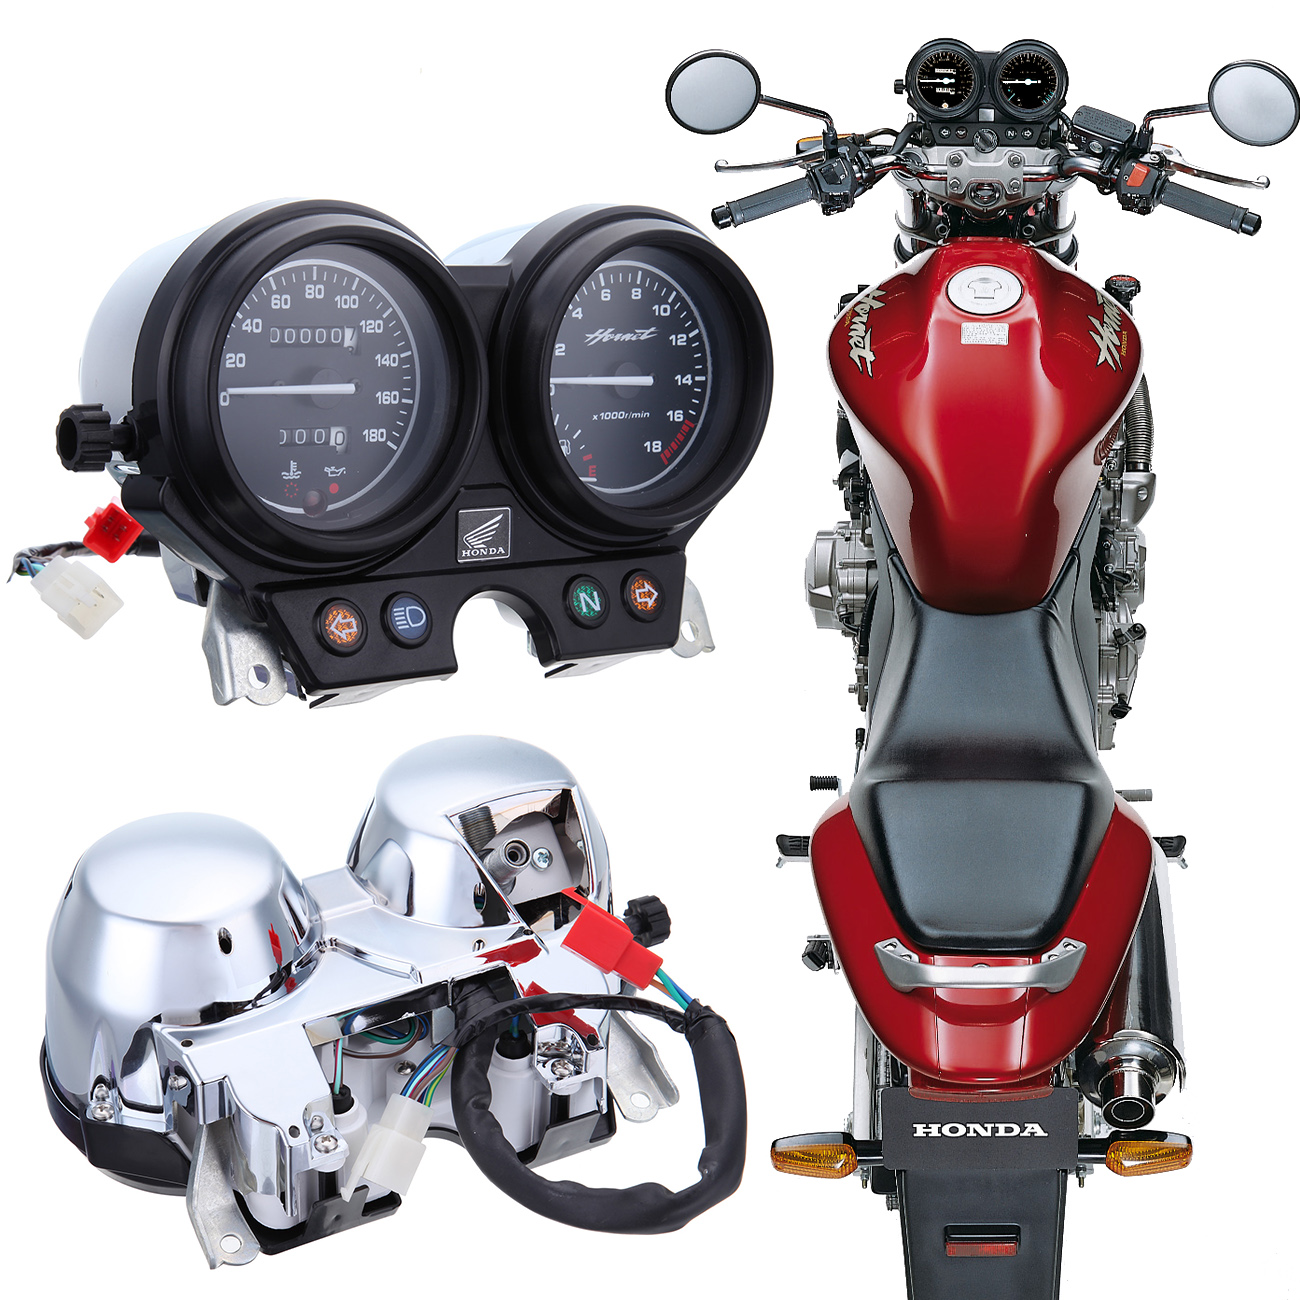 For Honda Hornet 250 2000 - 2005 2001 2002 2003 2004 2005 Motorcycle Speedometer Tachometer kilometer Gauges Kits for honda cb400 2005 2016 cb600f hornet 1998 2000 cb750 2007 motorcycle windshield windscreen pare brise black